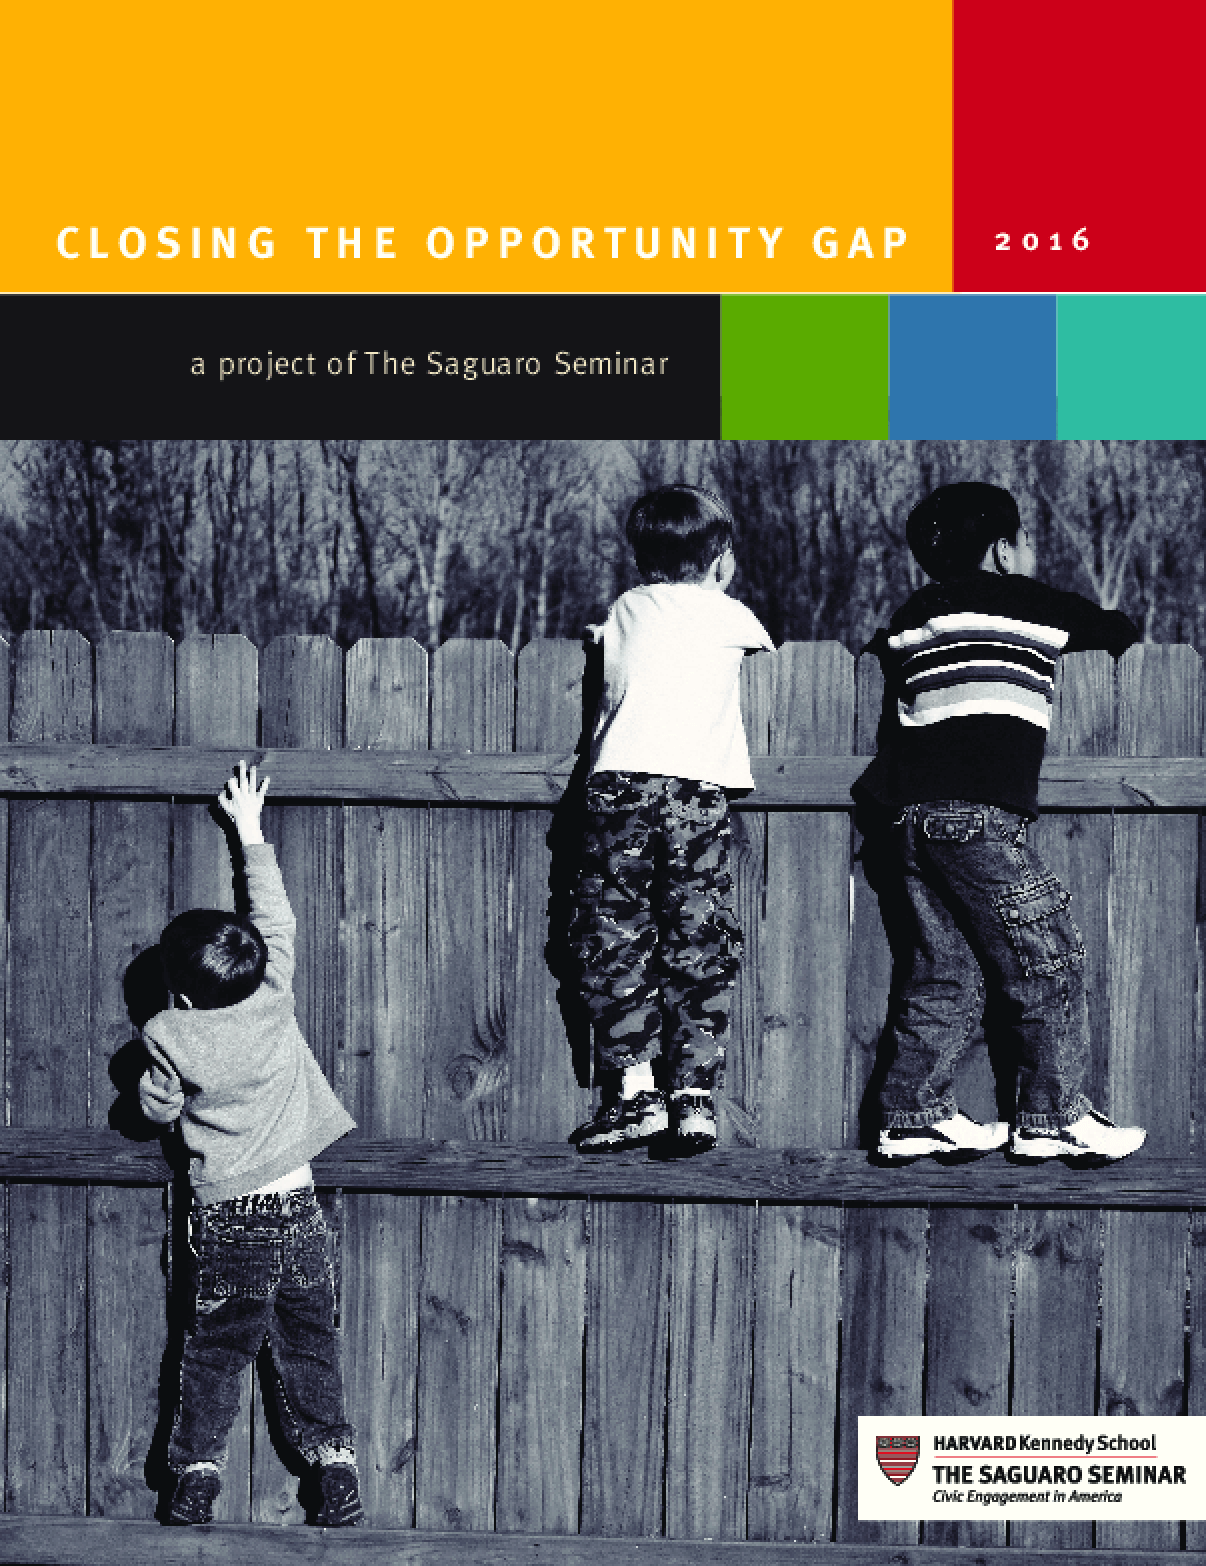 Closing the Opportunity Gap 2016: A Project of The Saguaro Seminar